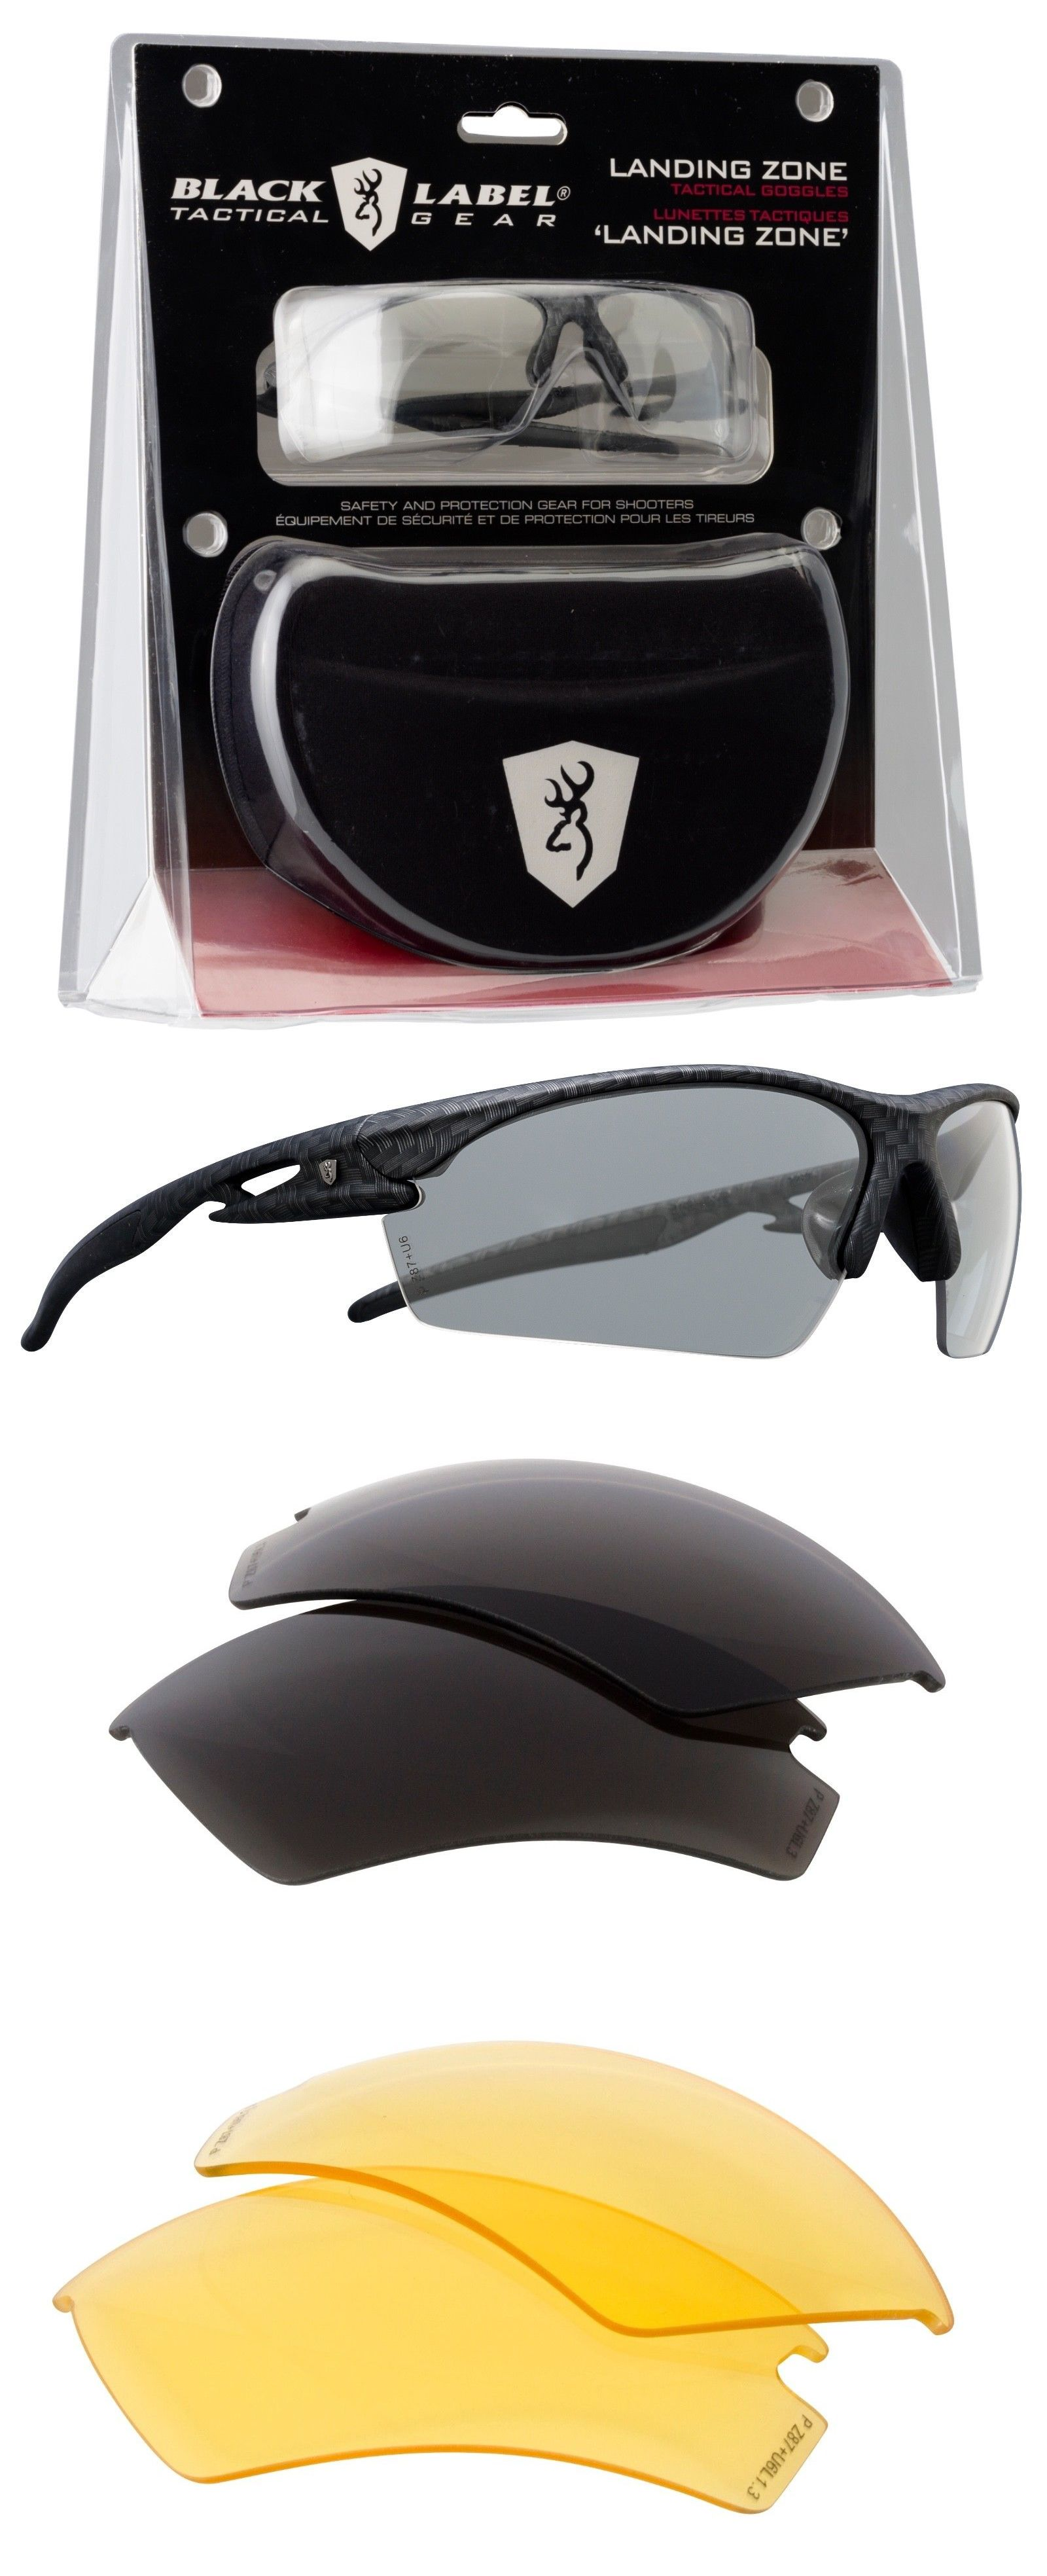 f2ec2f3cddc Shooting and Safety Glasses 151549  Browning Black Label Landing Zone  Glasses Tactical Safety Interchangable Lenses